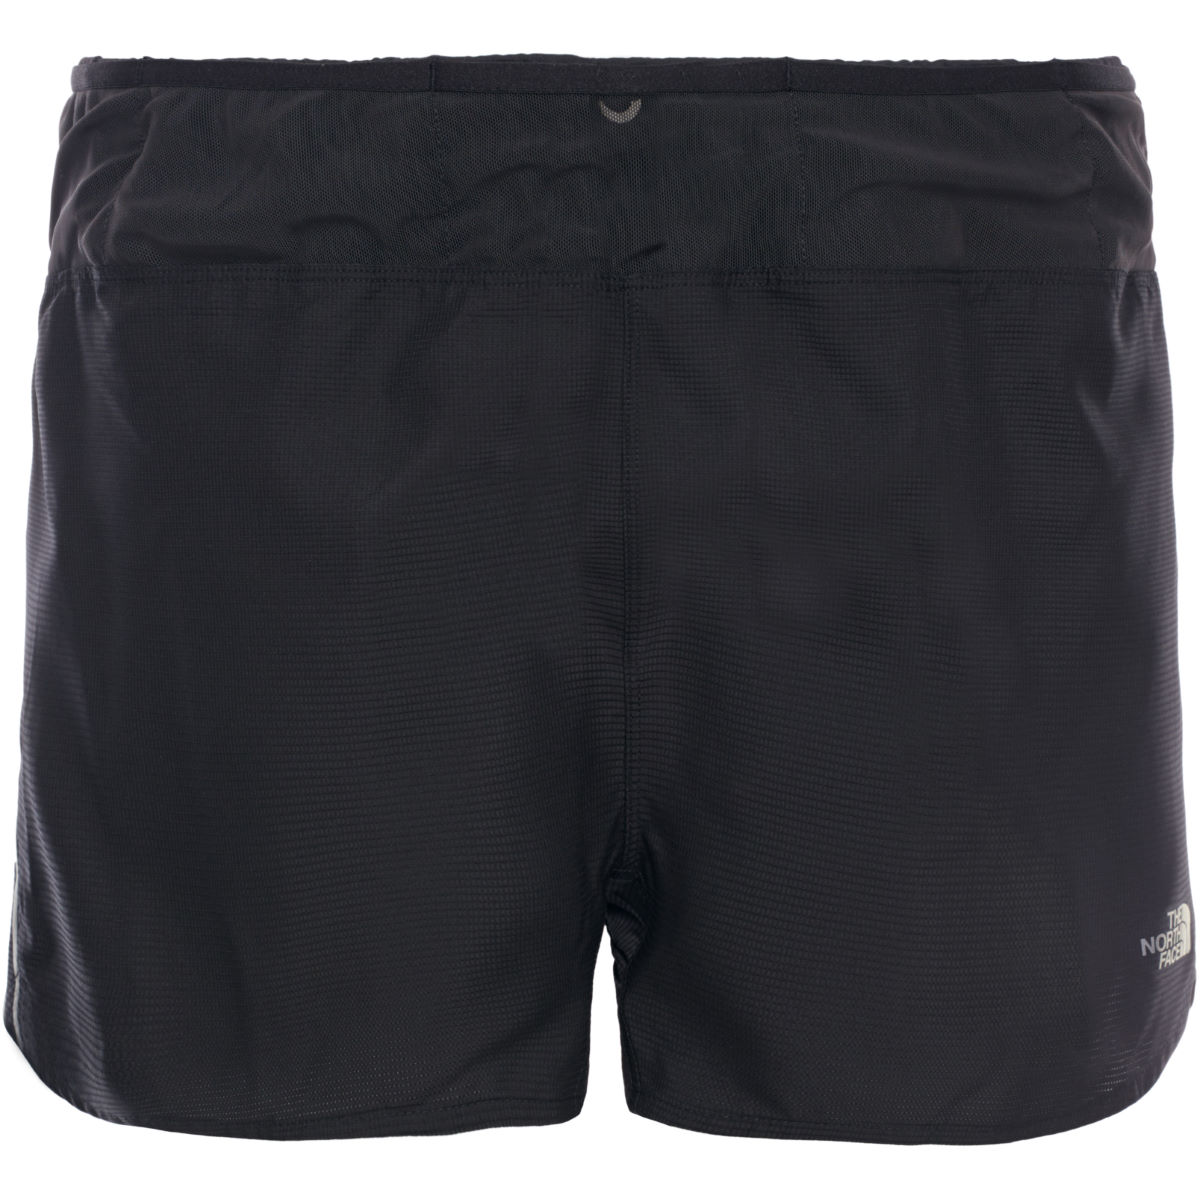 Short The North Face Flight Series Vent (PE16) - XL TNF Black Shorts de running